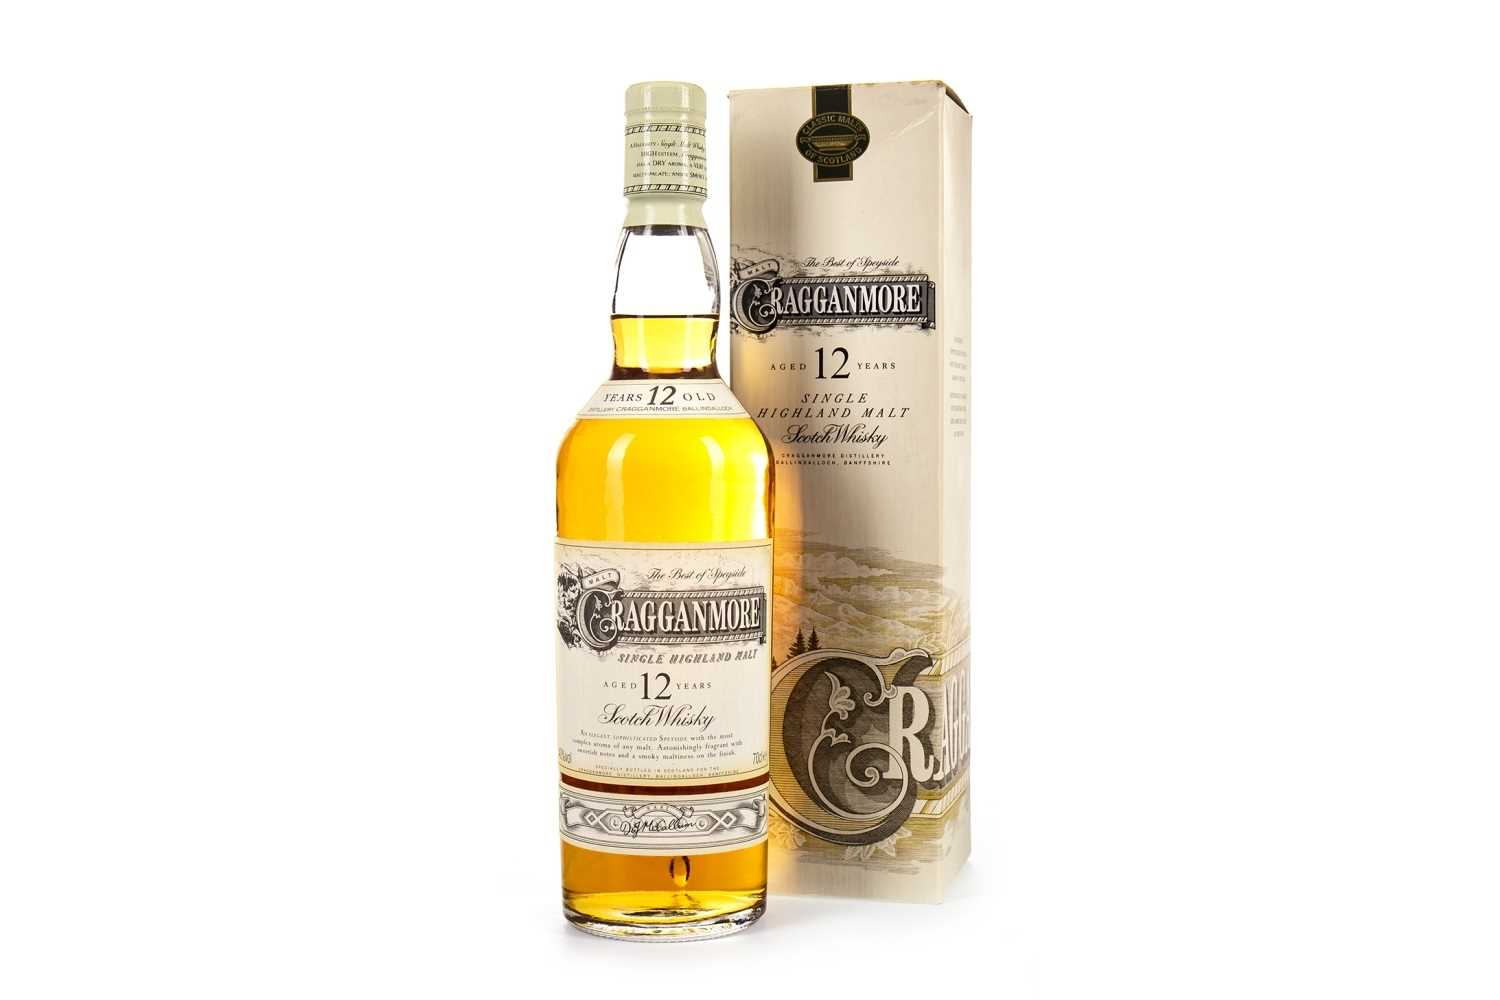 Lot 302-CRAGGANMORE AGED 12 YEARS